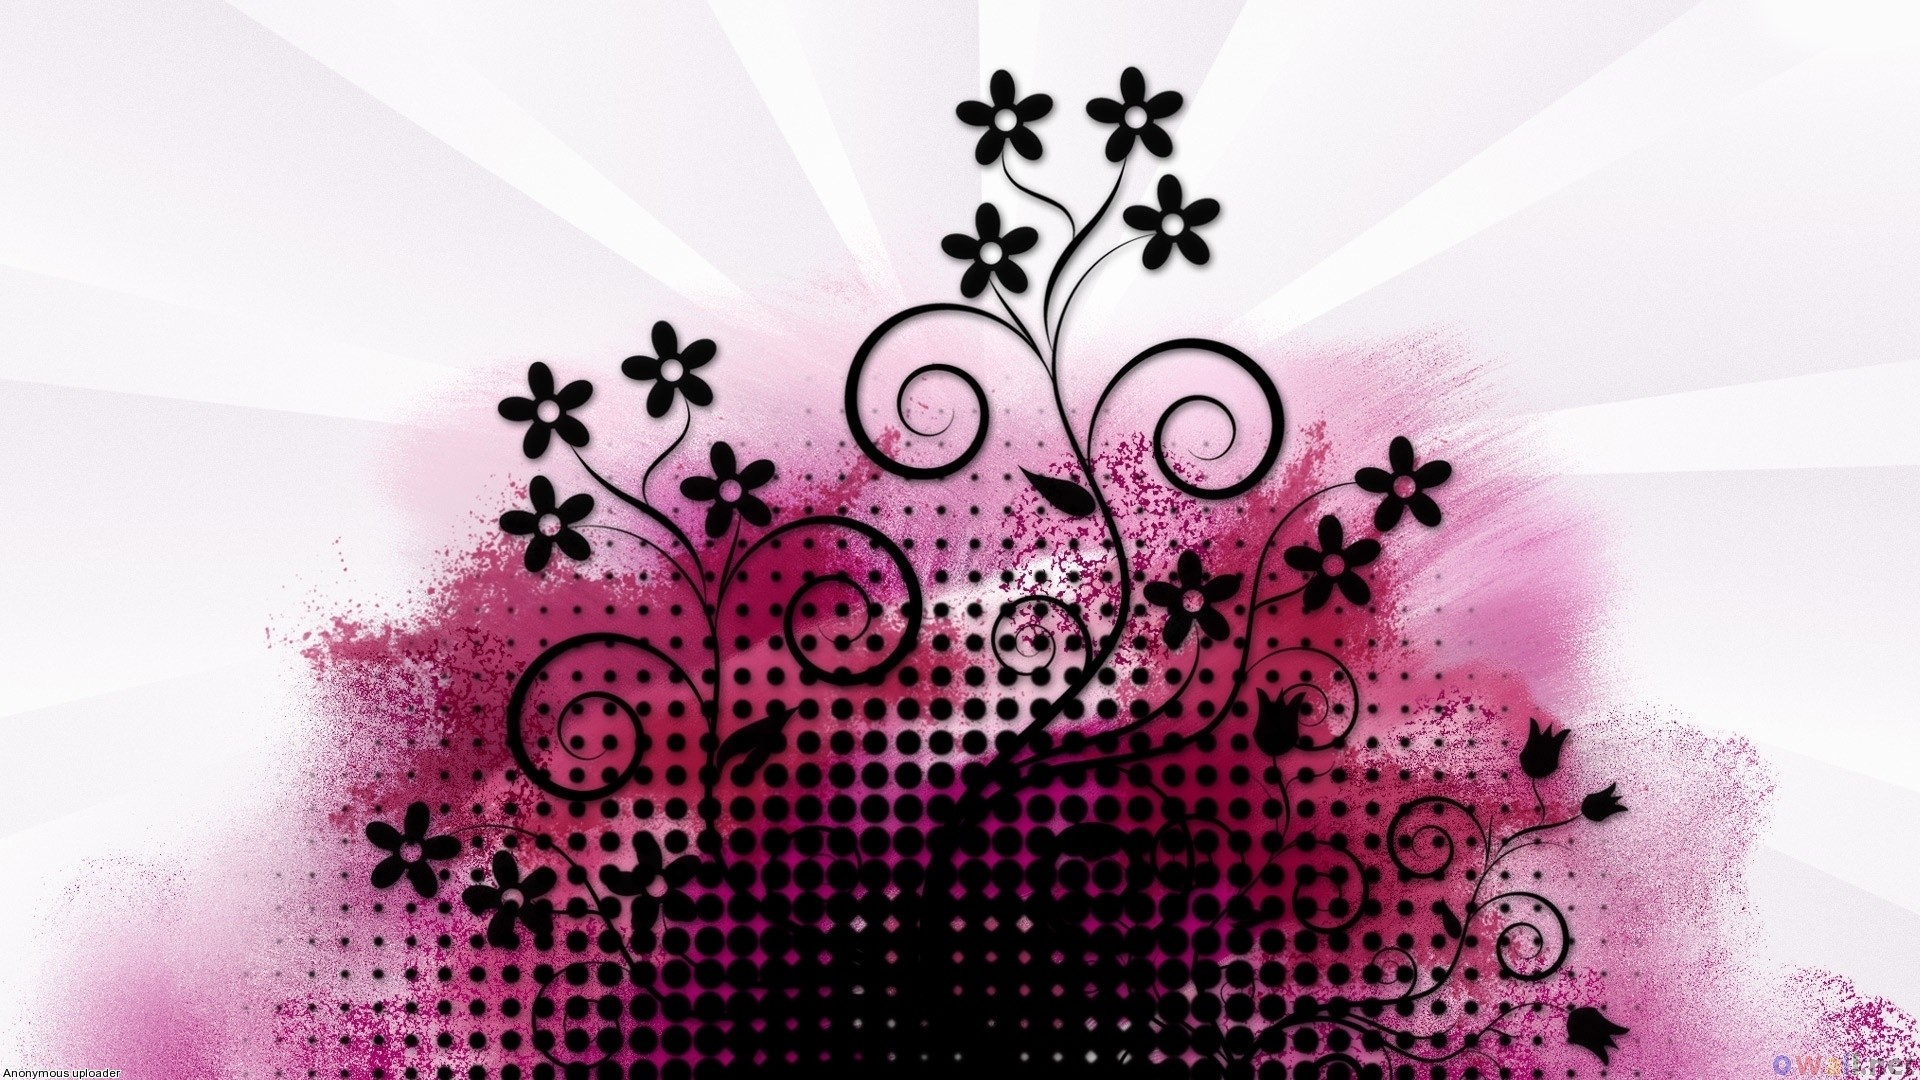 Girly Hd Wallpapers Latest Cute Girly Flowers Wallpaper